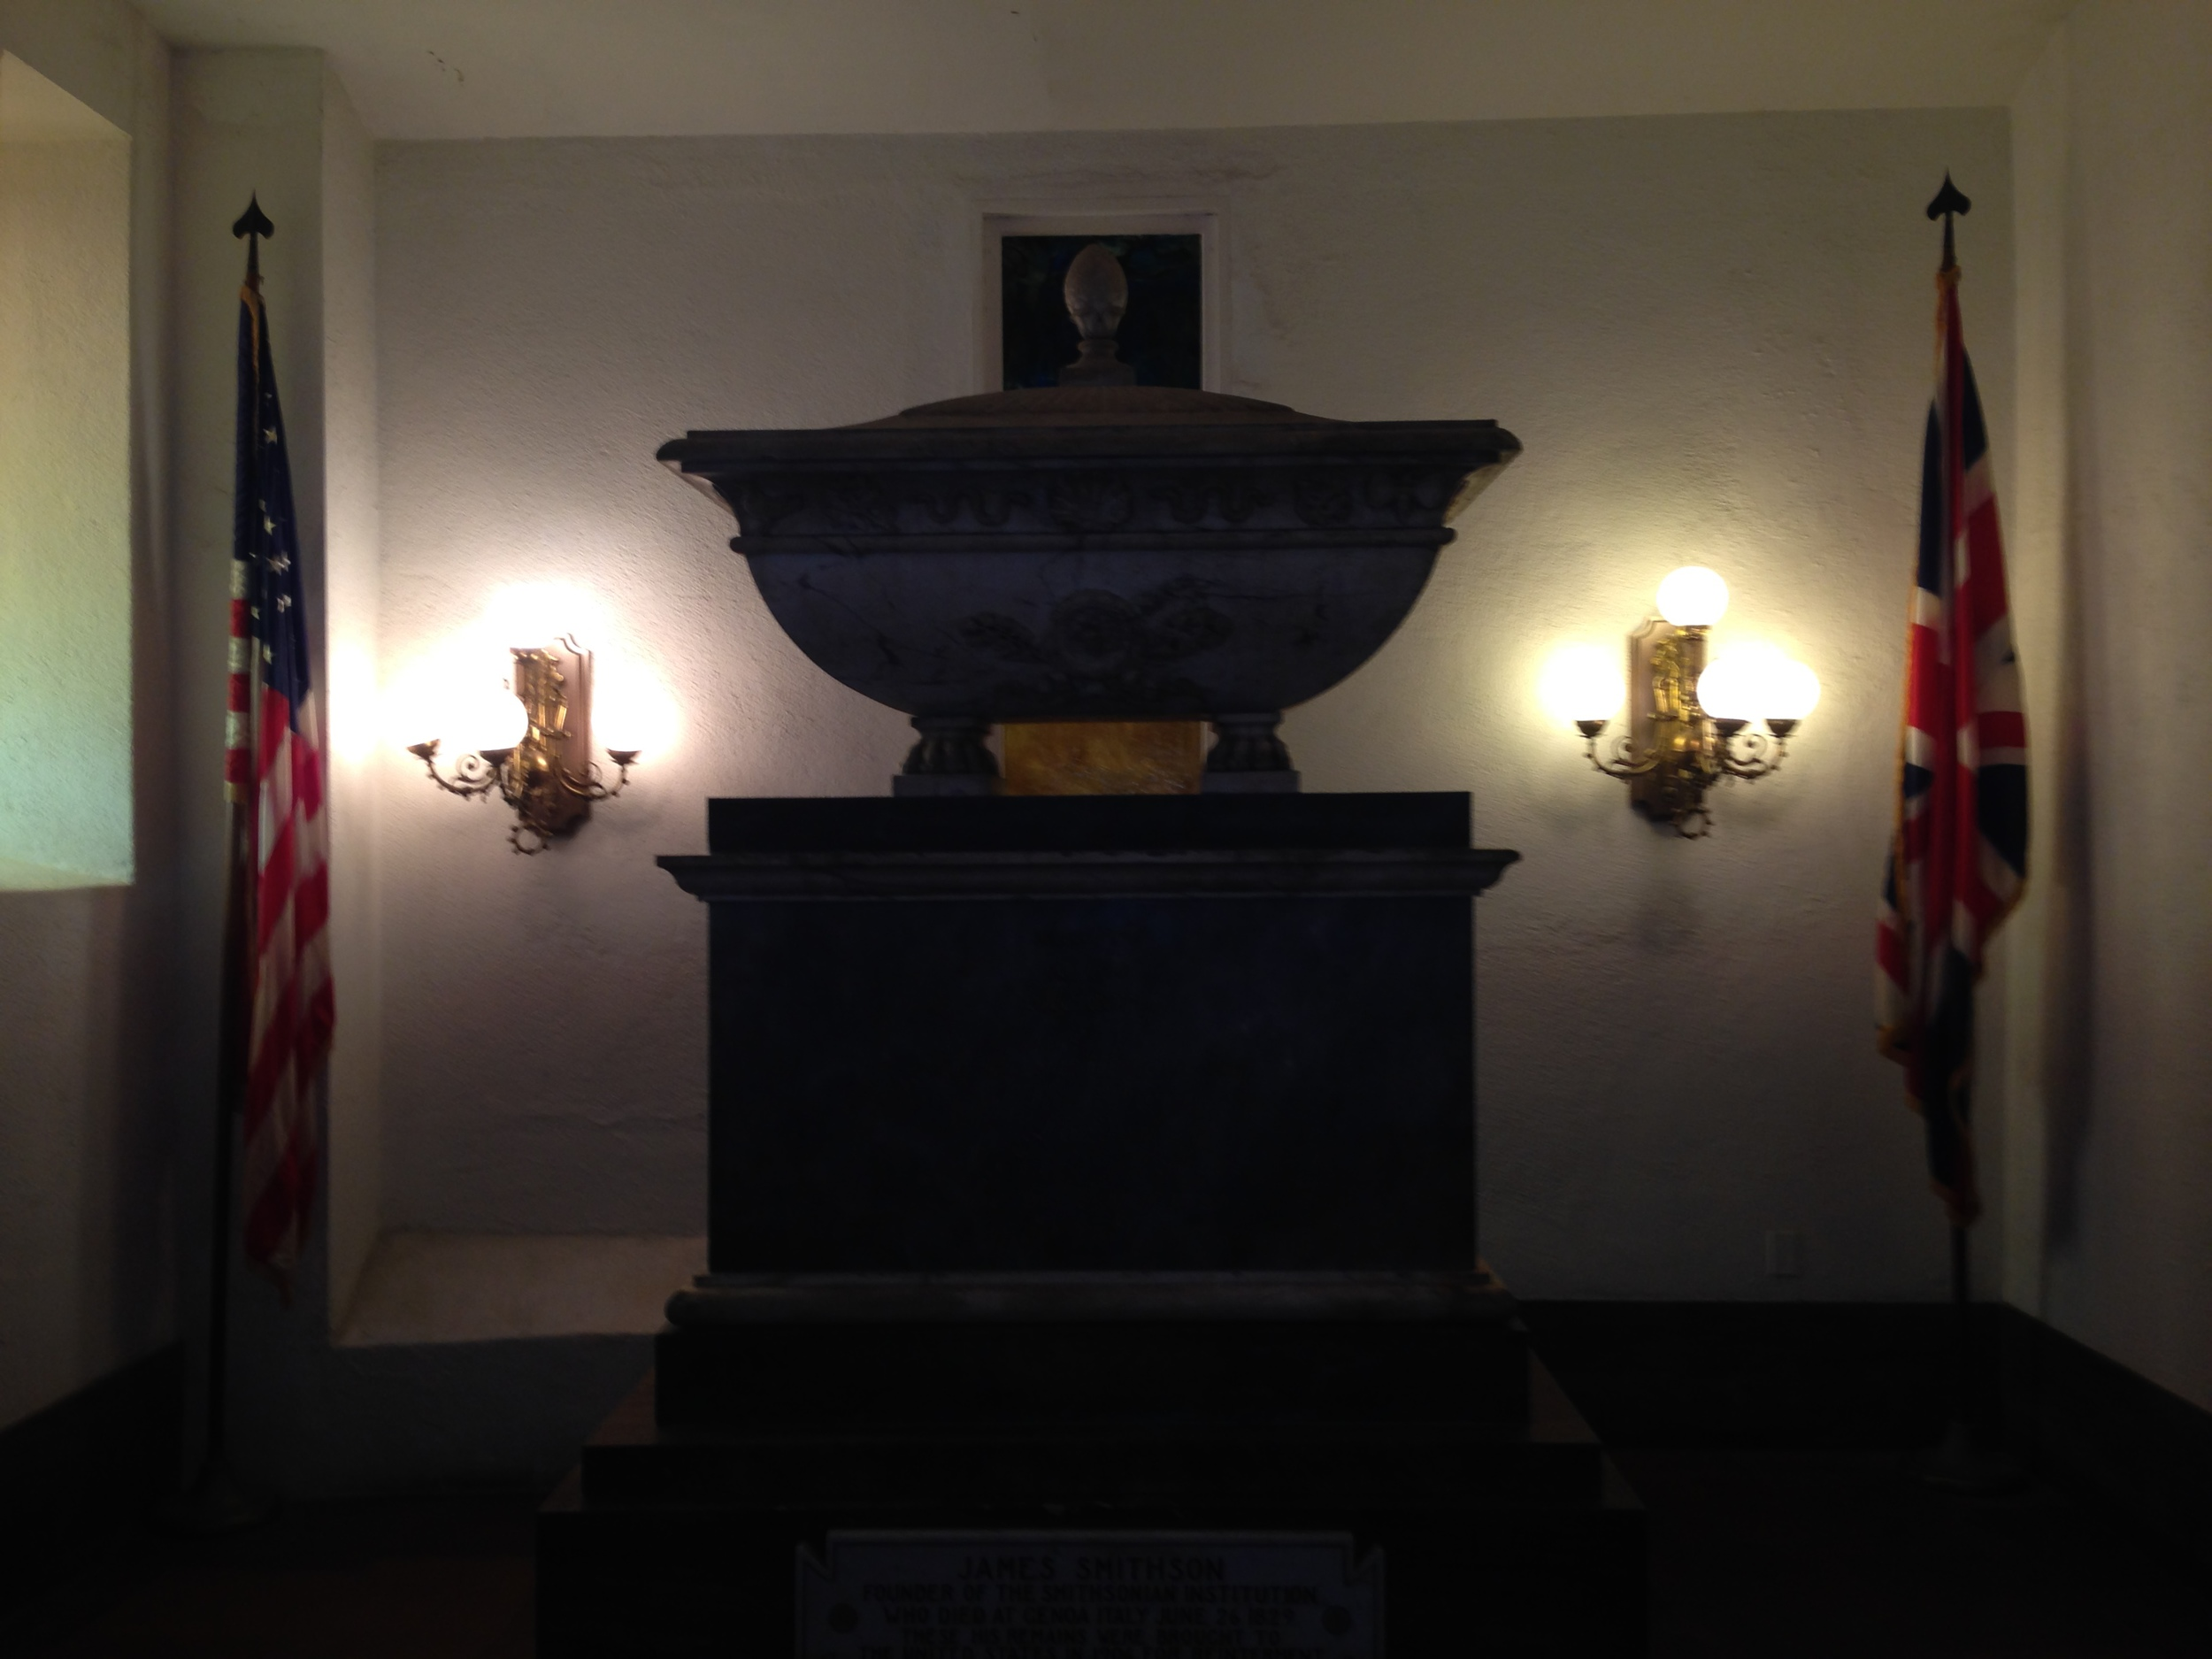 James Smithson's final resting place